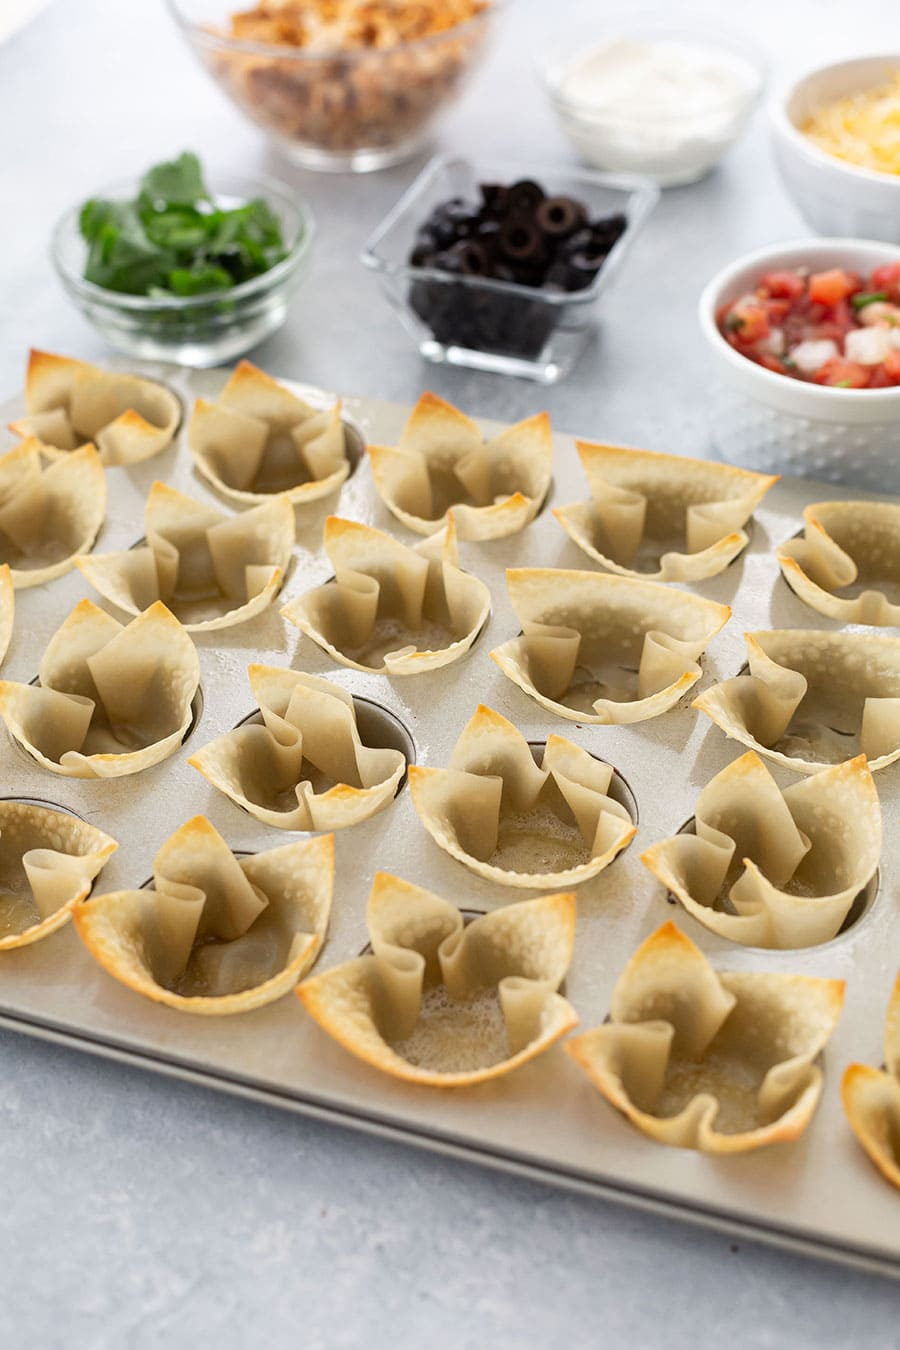 How to Make Wonton Cups in Muffin Tin